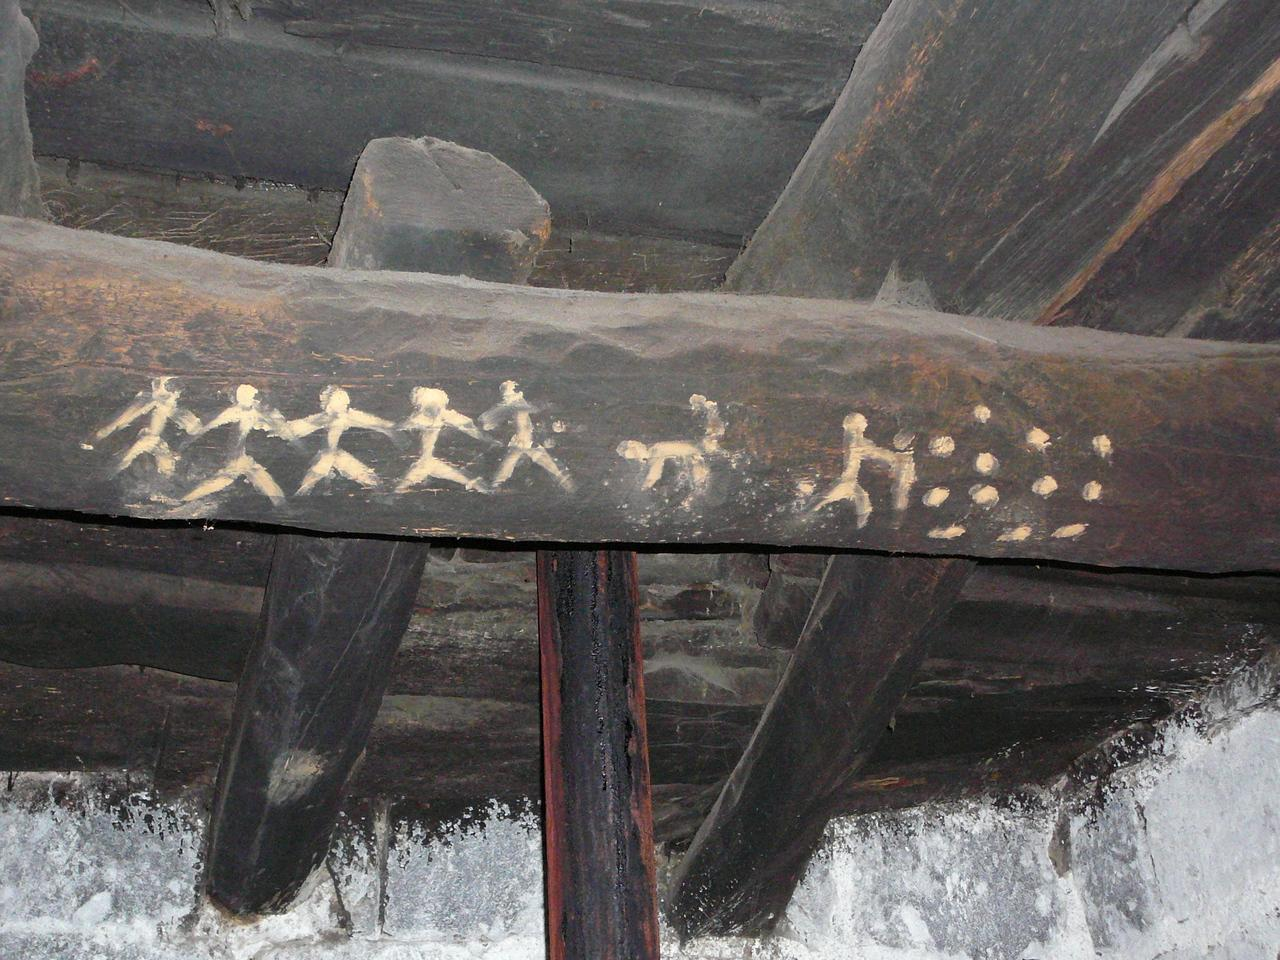 Xidirnebi paintings (February 2007)